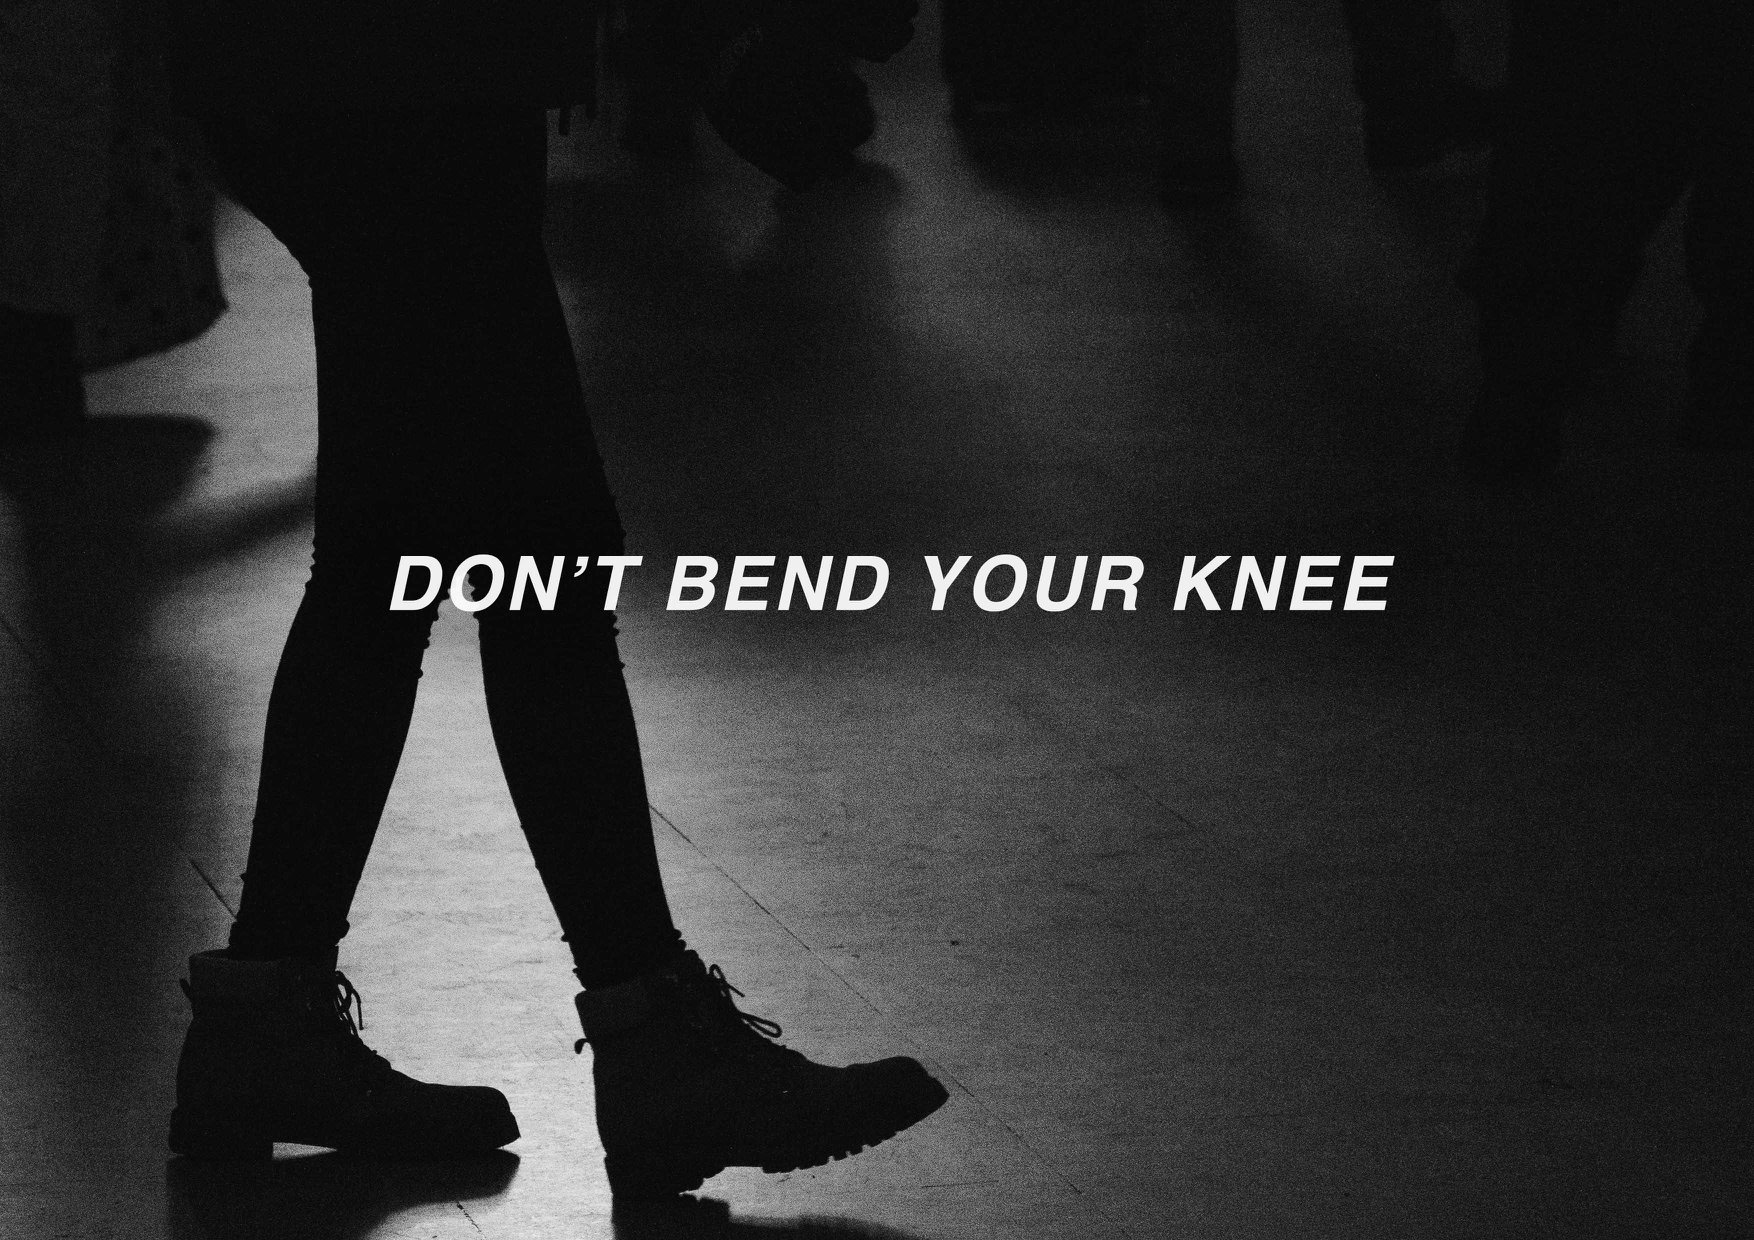 Don't bend your knee blog post cover